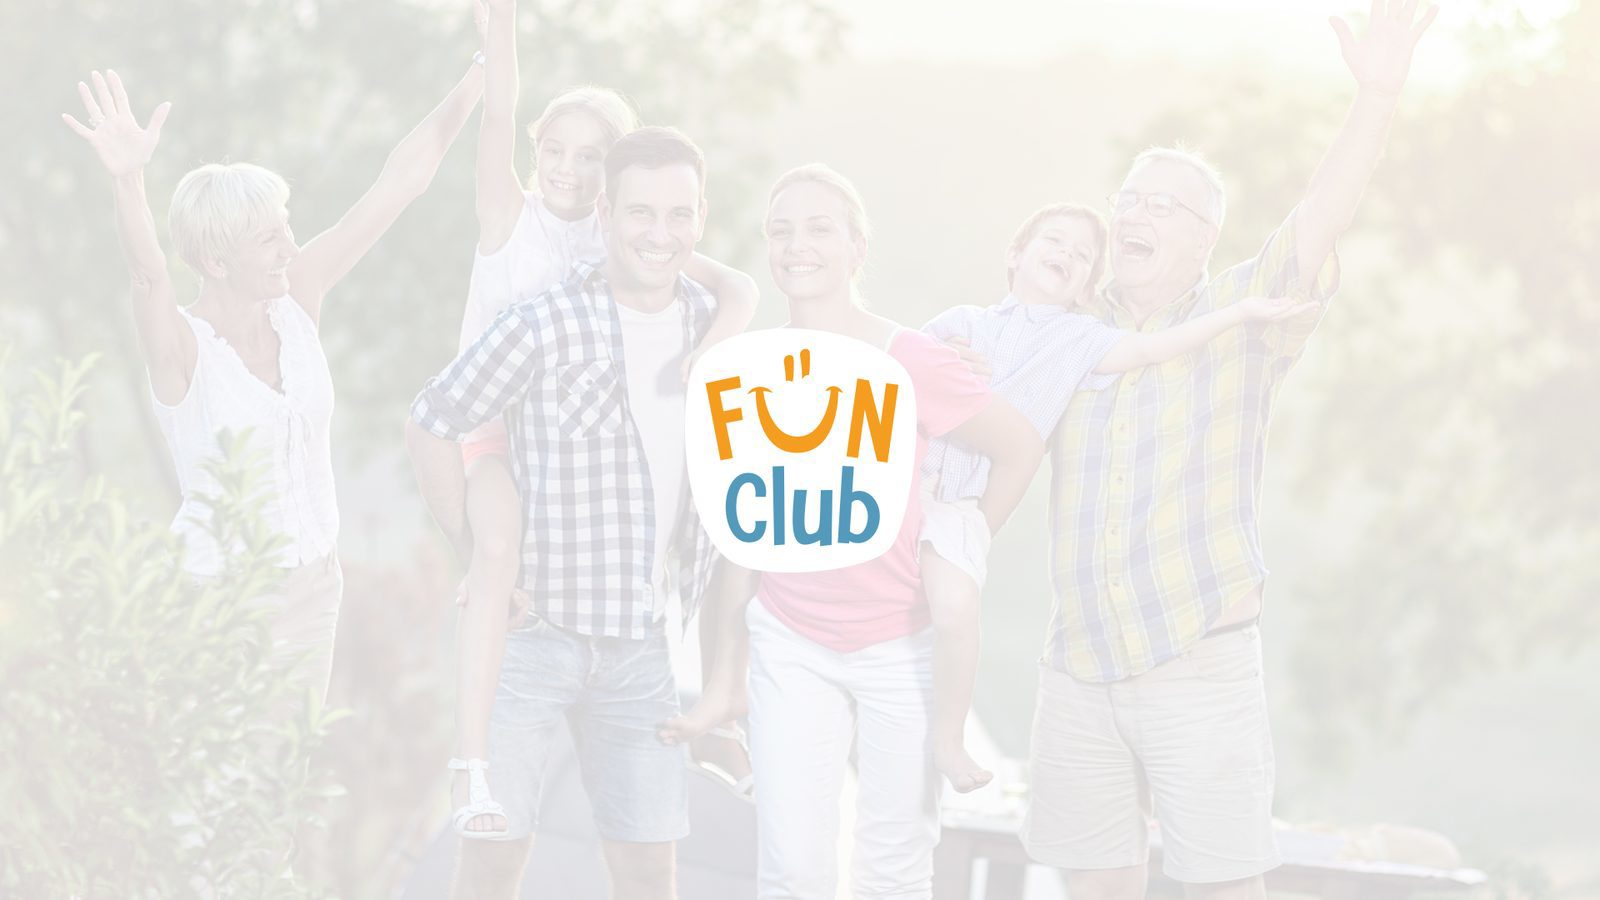 EuroParcs Fun Club logo